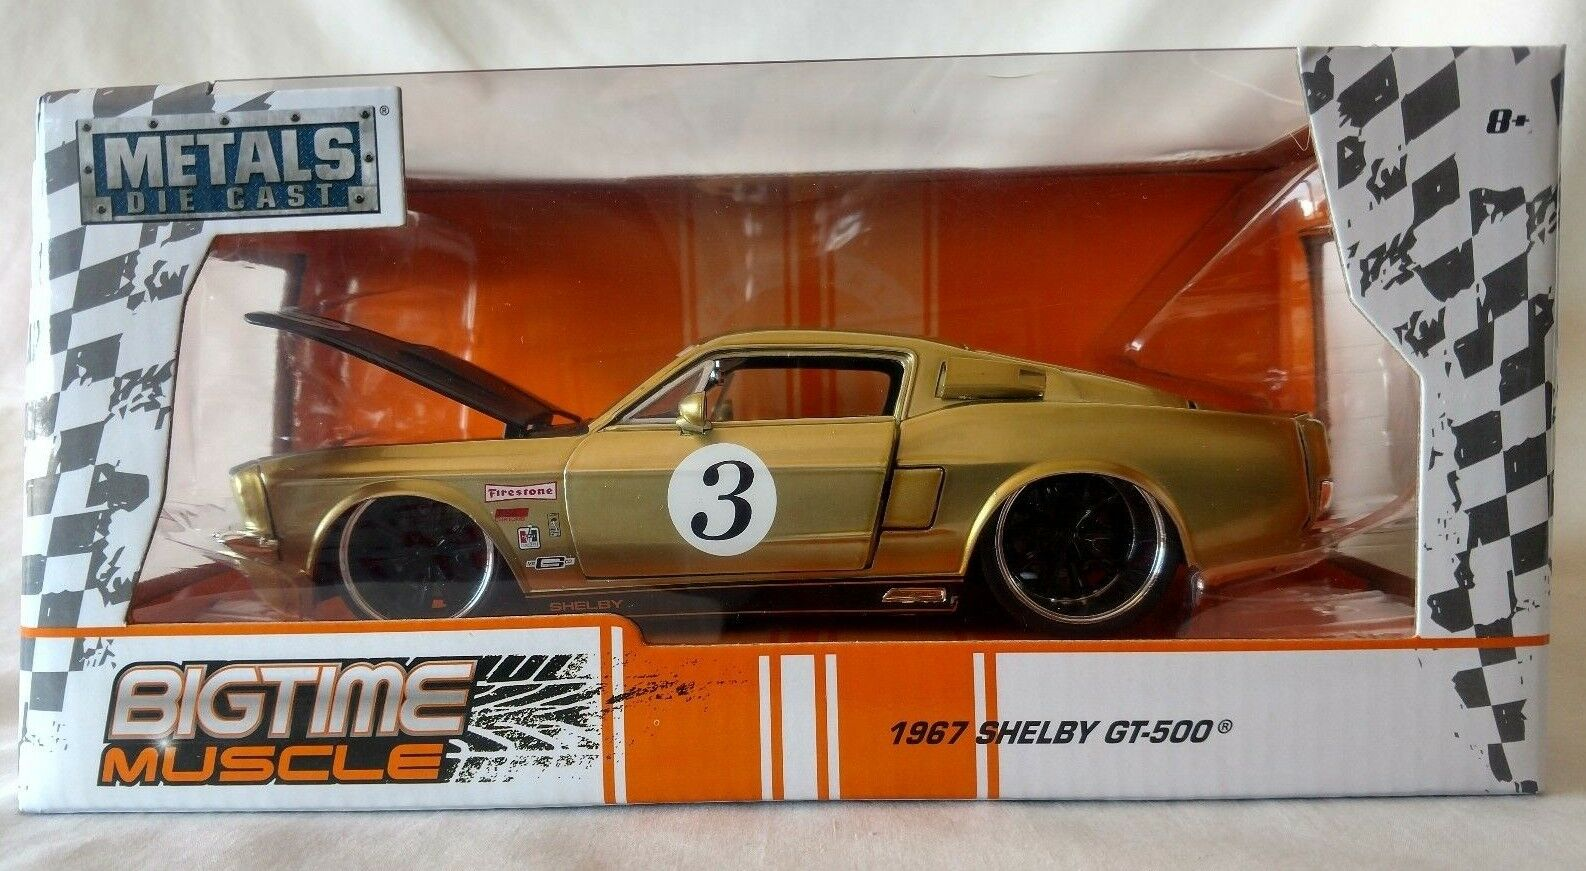 JADA TOYS 1967 SHELBY GT-500 BIG TIME MUSCLE 1 24 SCALE DIECAST